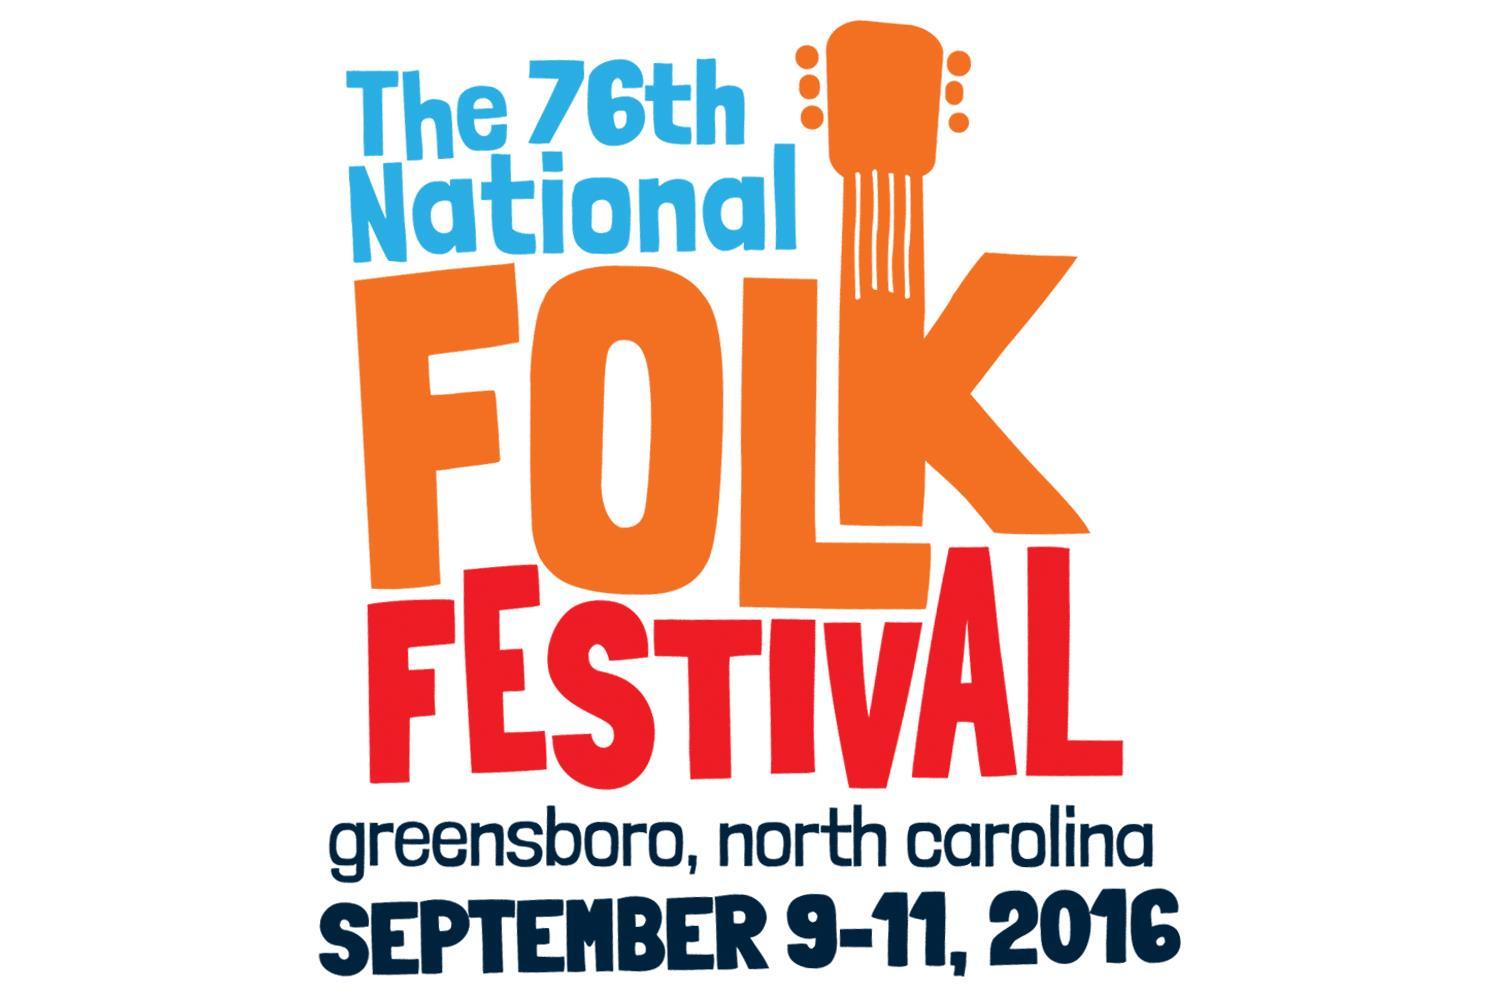 National Folk Festival Package at O.Henry Hotel